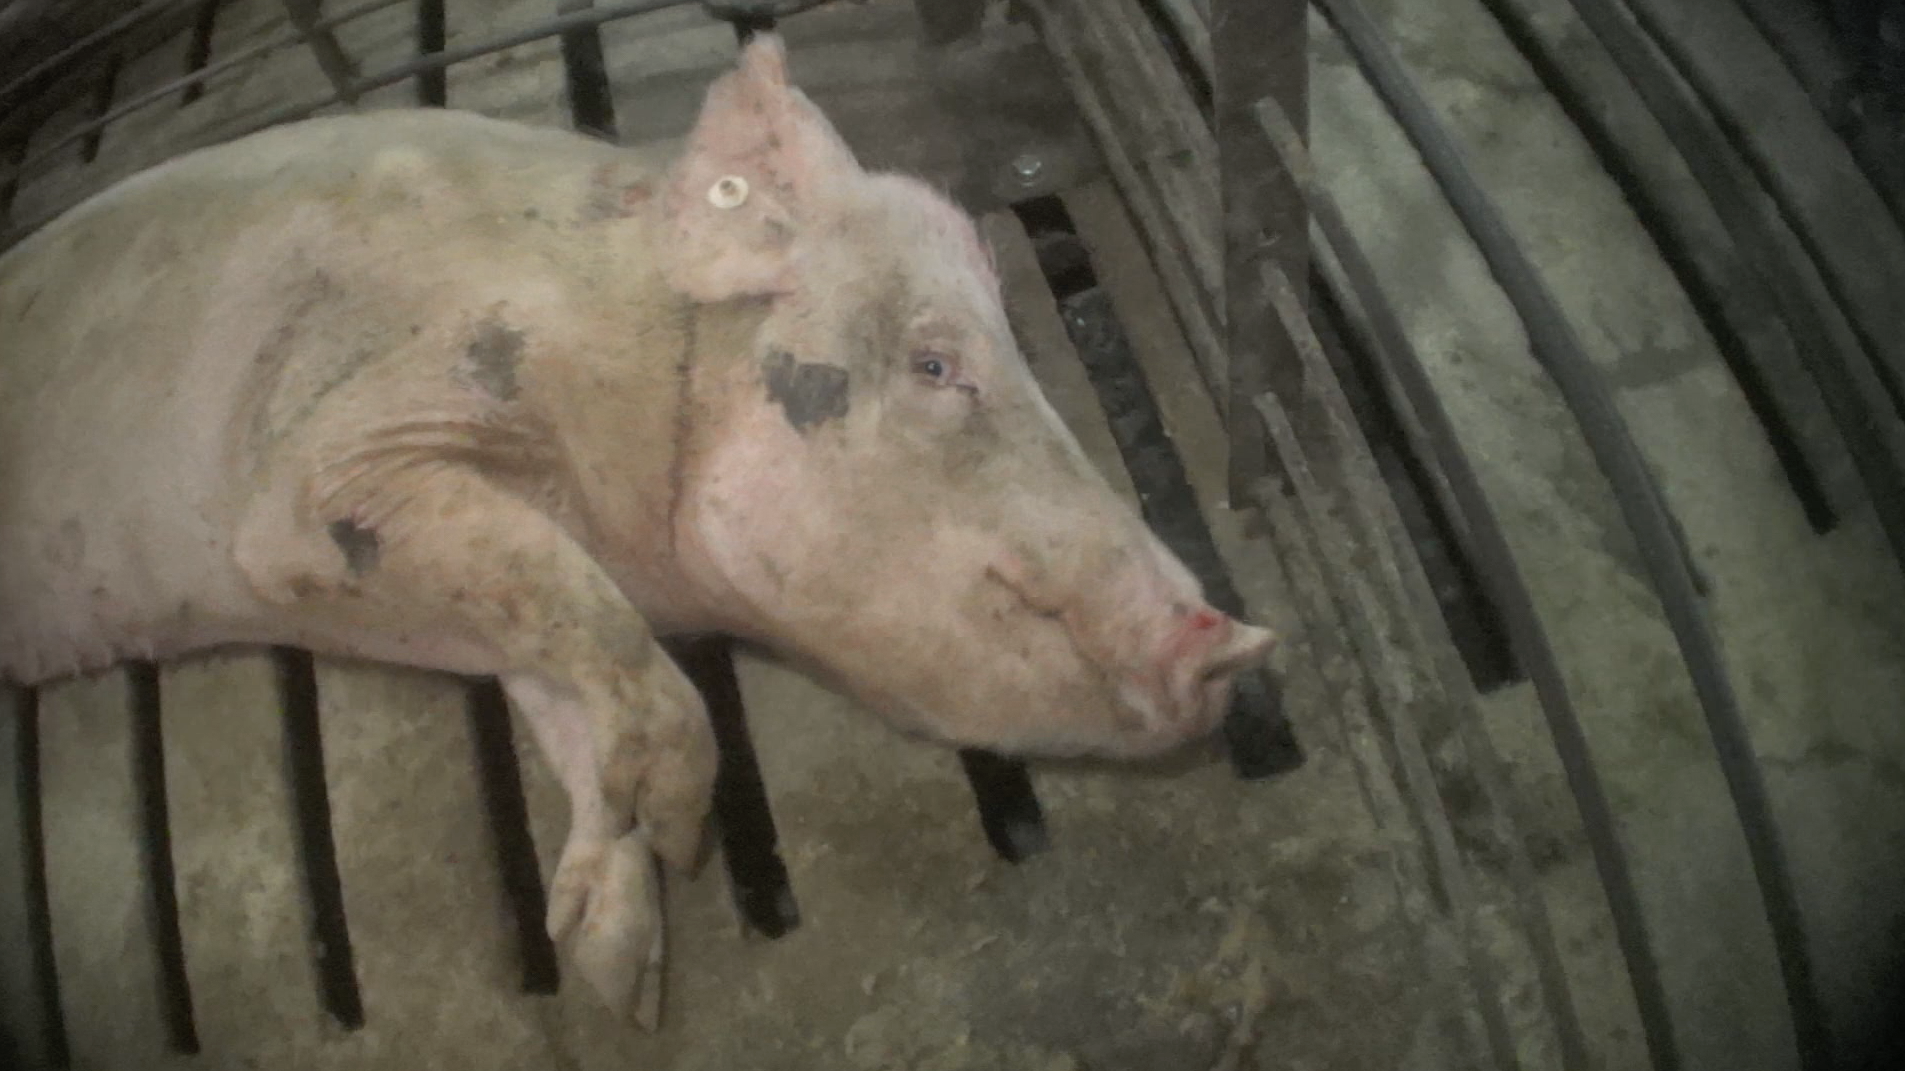 Christensen Farms Factory Pig Farm Investigation From